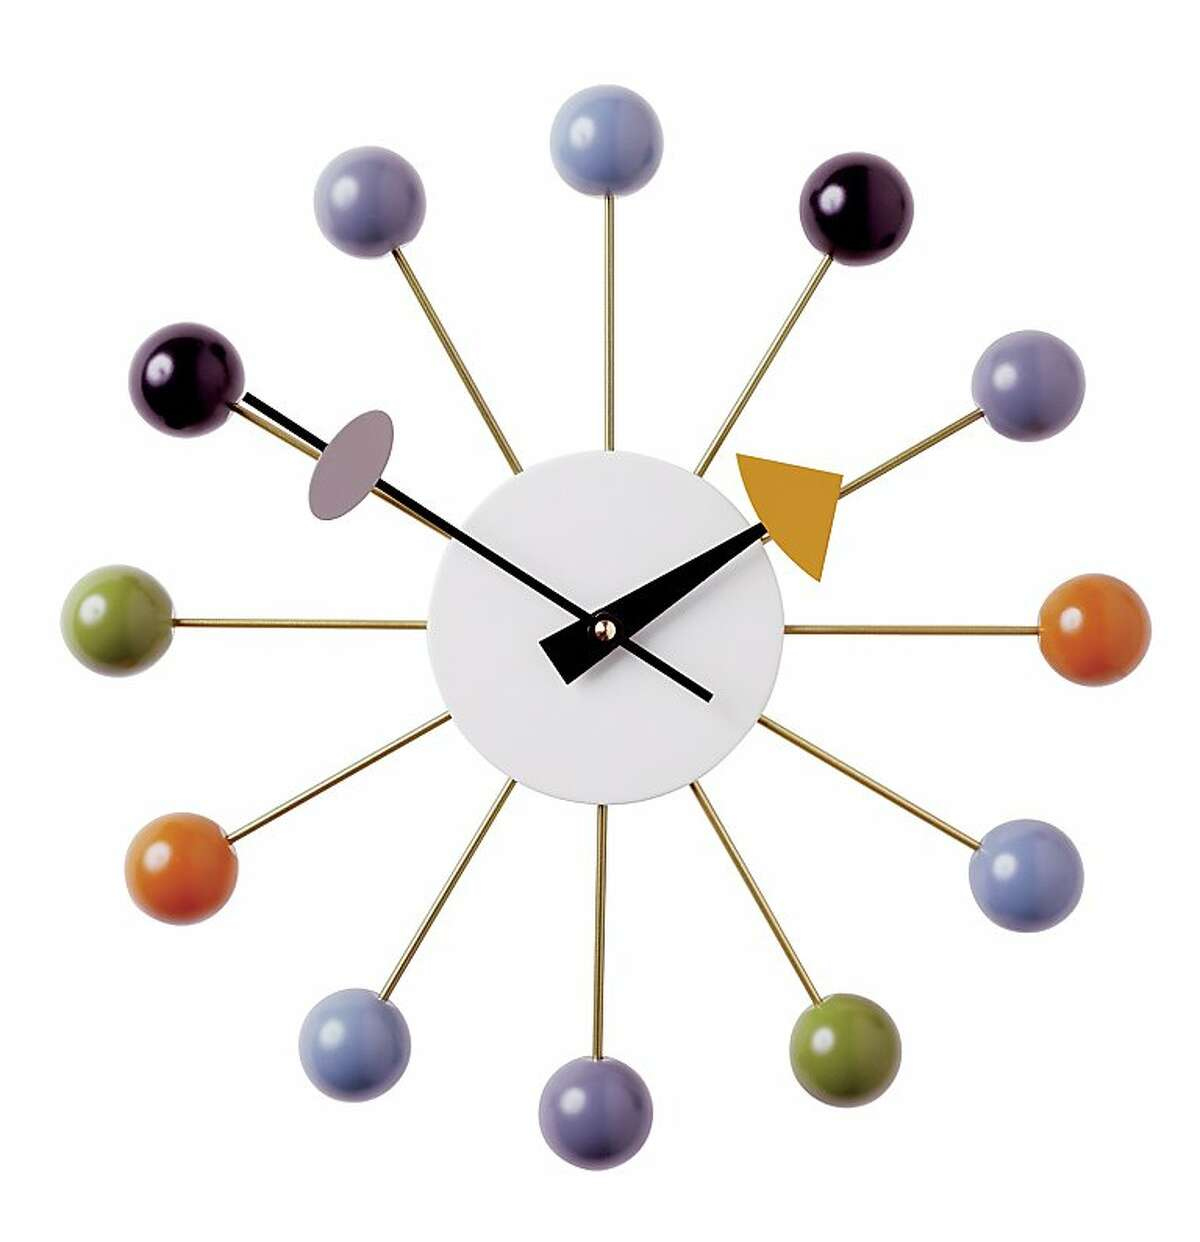 More: Nelson Ball Clock in Multi, $310.25, from Design Within Reach (dwr.com)